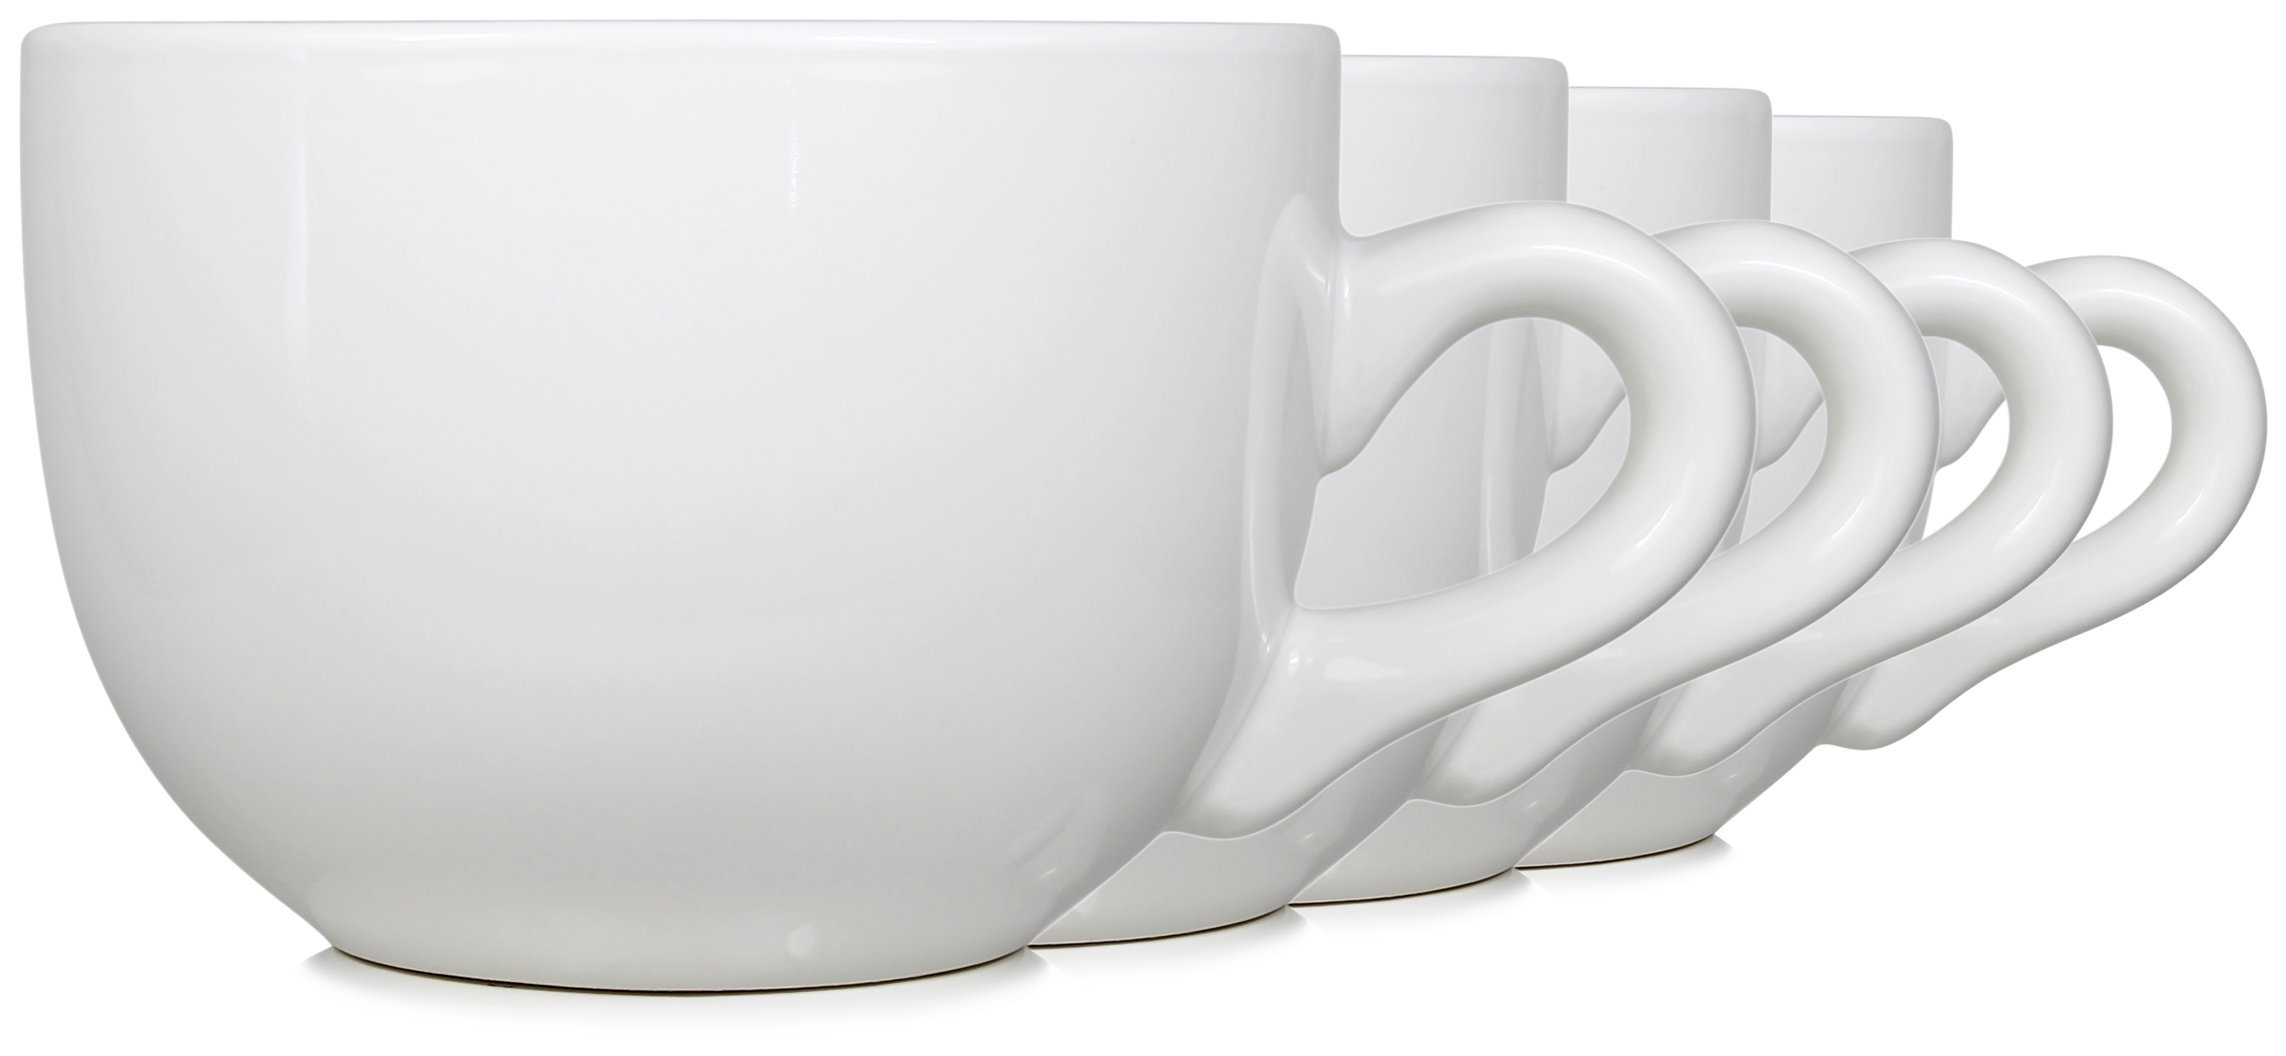 Serami 22oz Ceramic Jumbo Bowl Mugs w/Thick Walls, Handle, and Wide Mouth, Set of 4